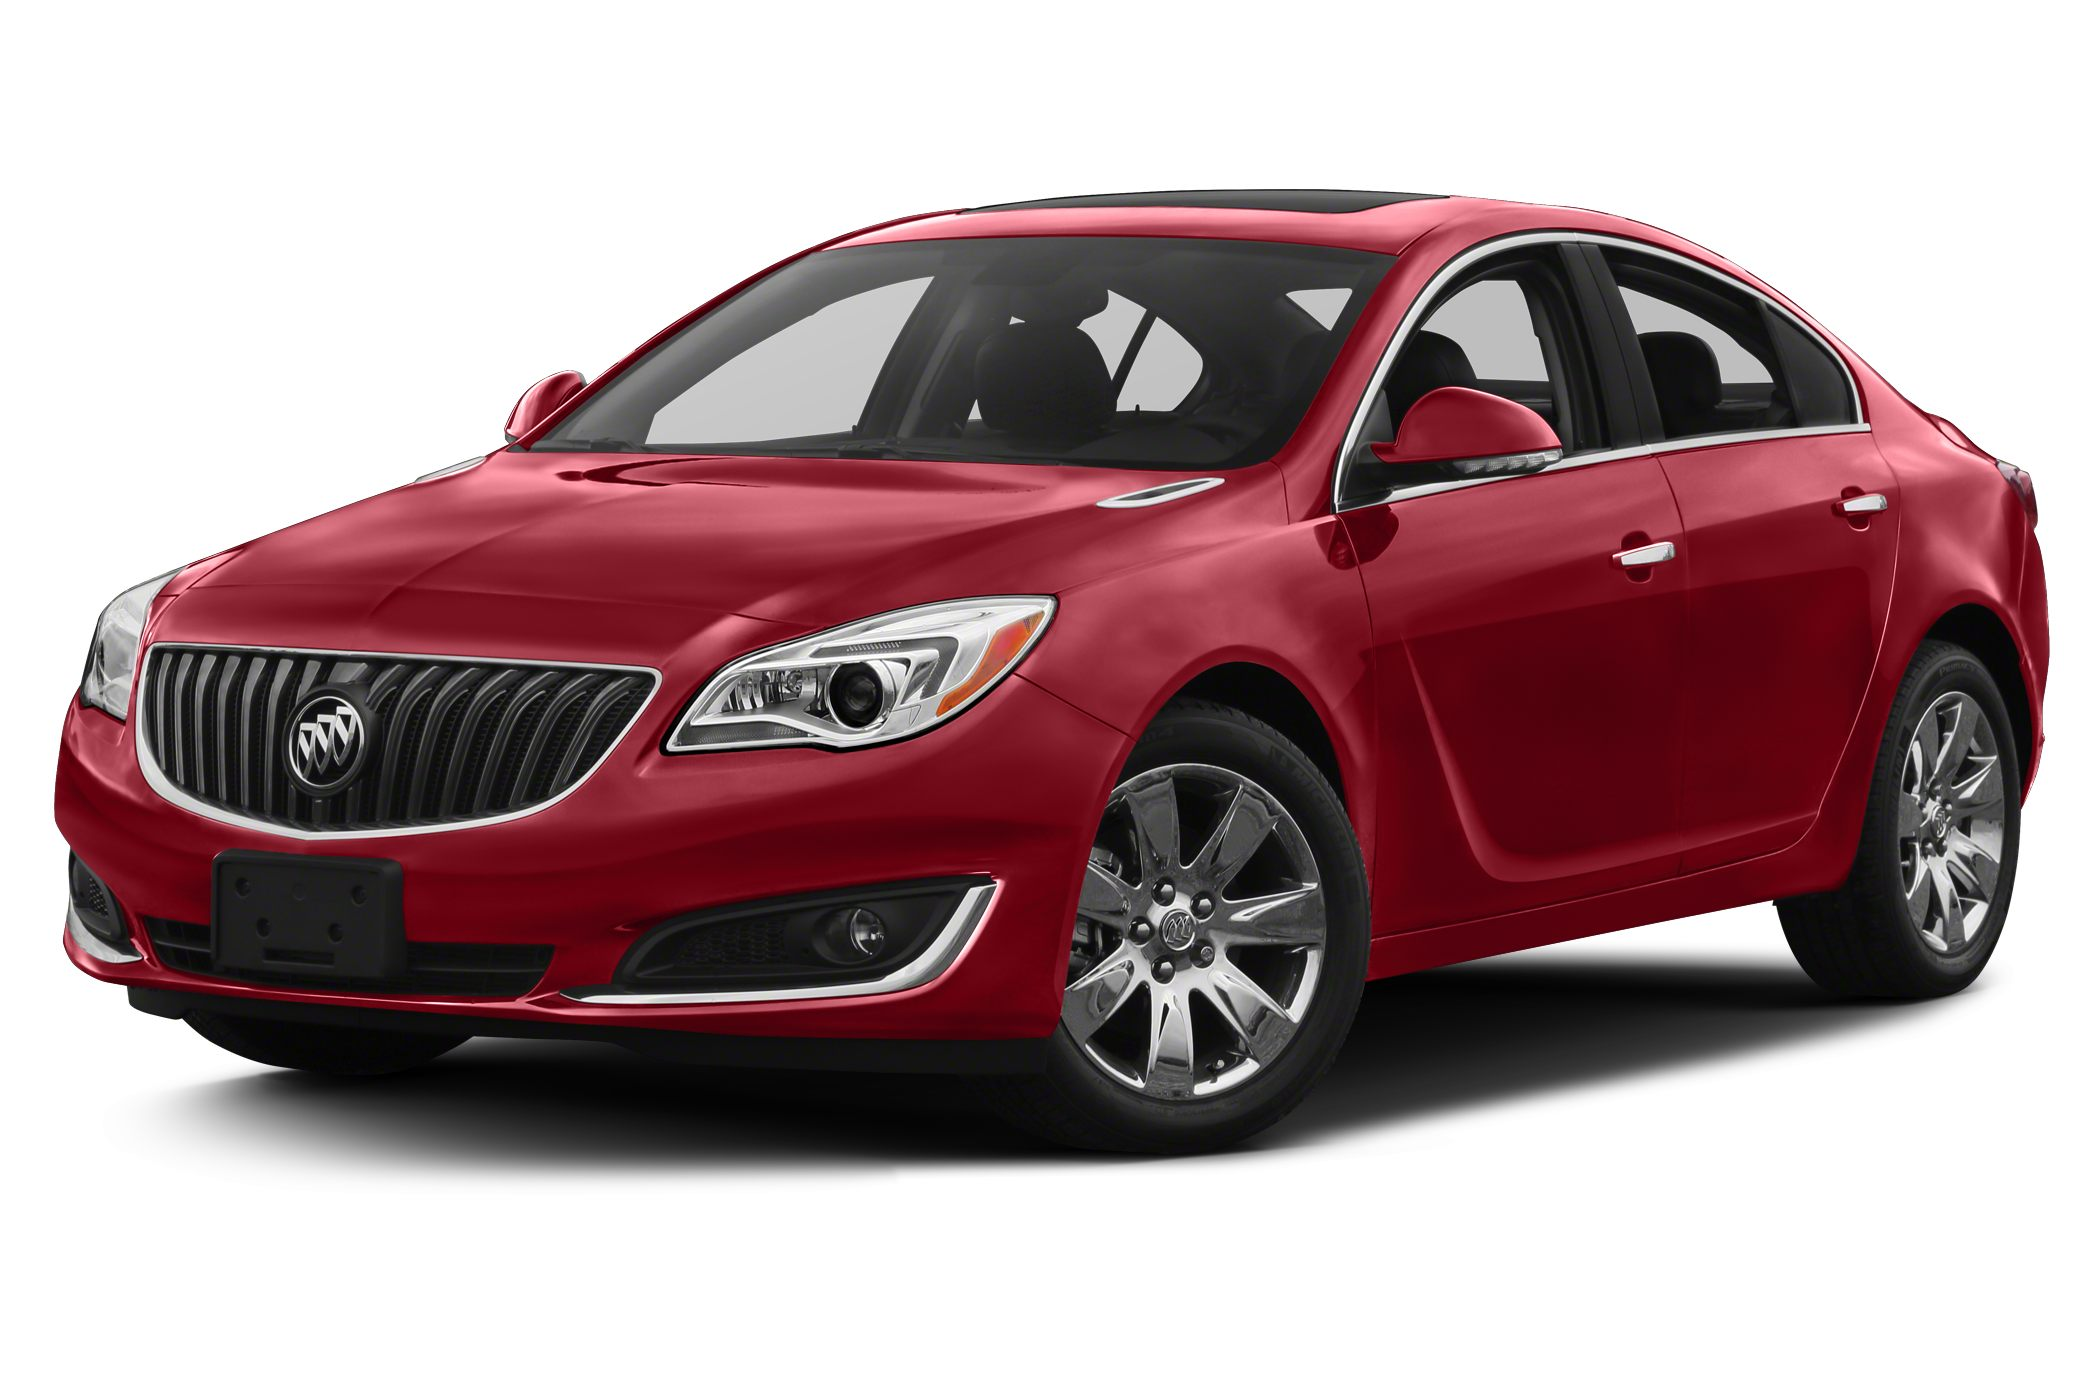 2014 Buick Regal Turbo Premium I FOLKS YOU GOTTA SEE THIS ONEMINT CONDITION AND RAREBRAND NEW